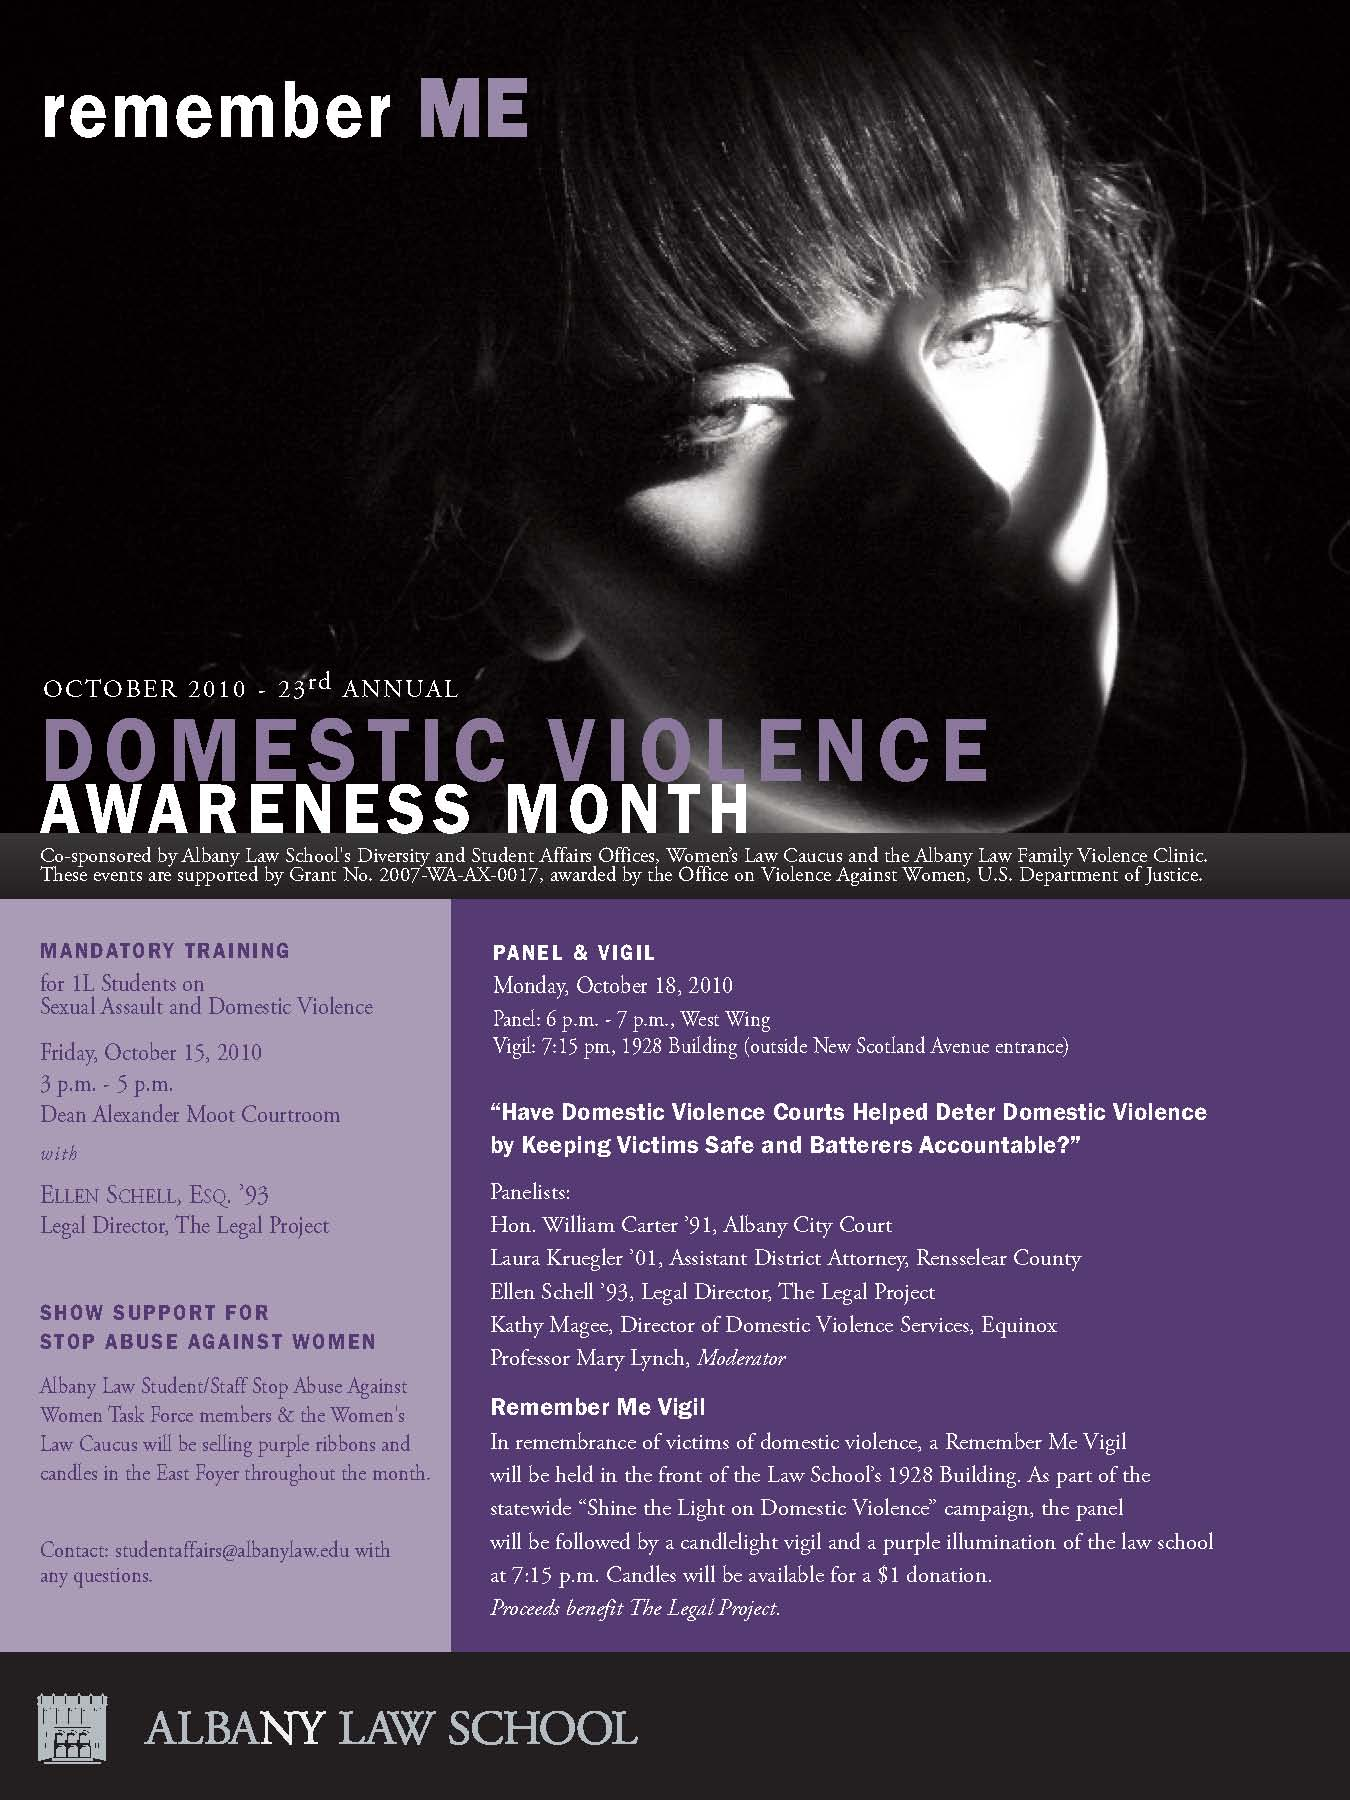 How to Raise Awareness About Domestic Violence